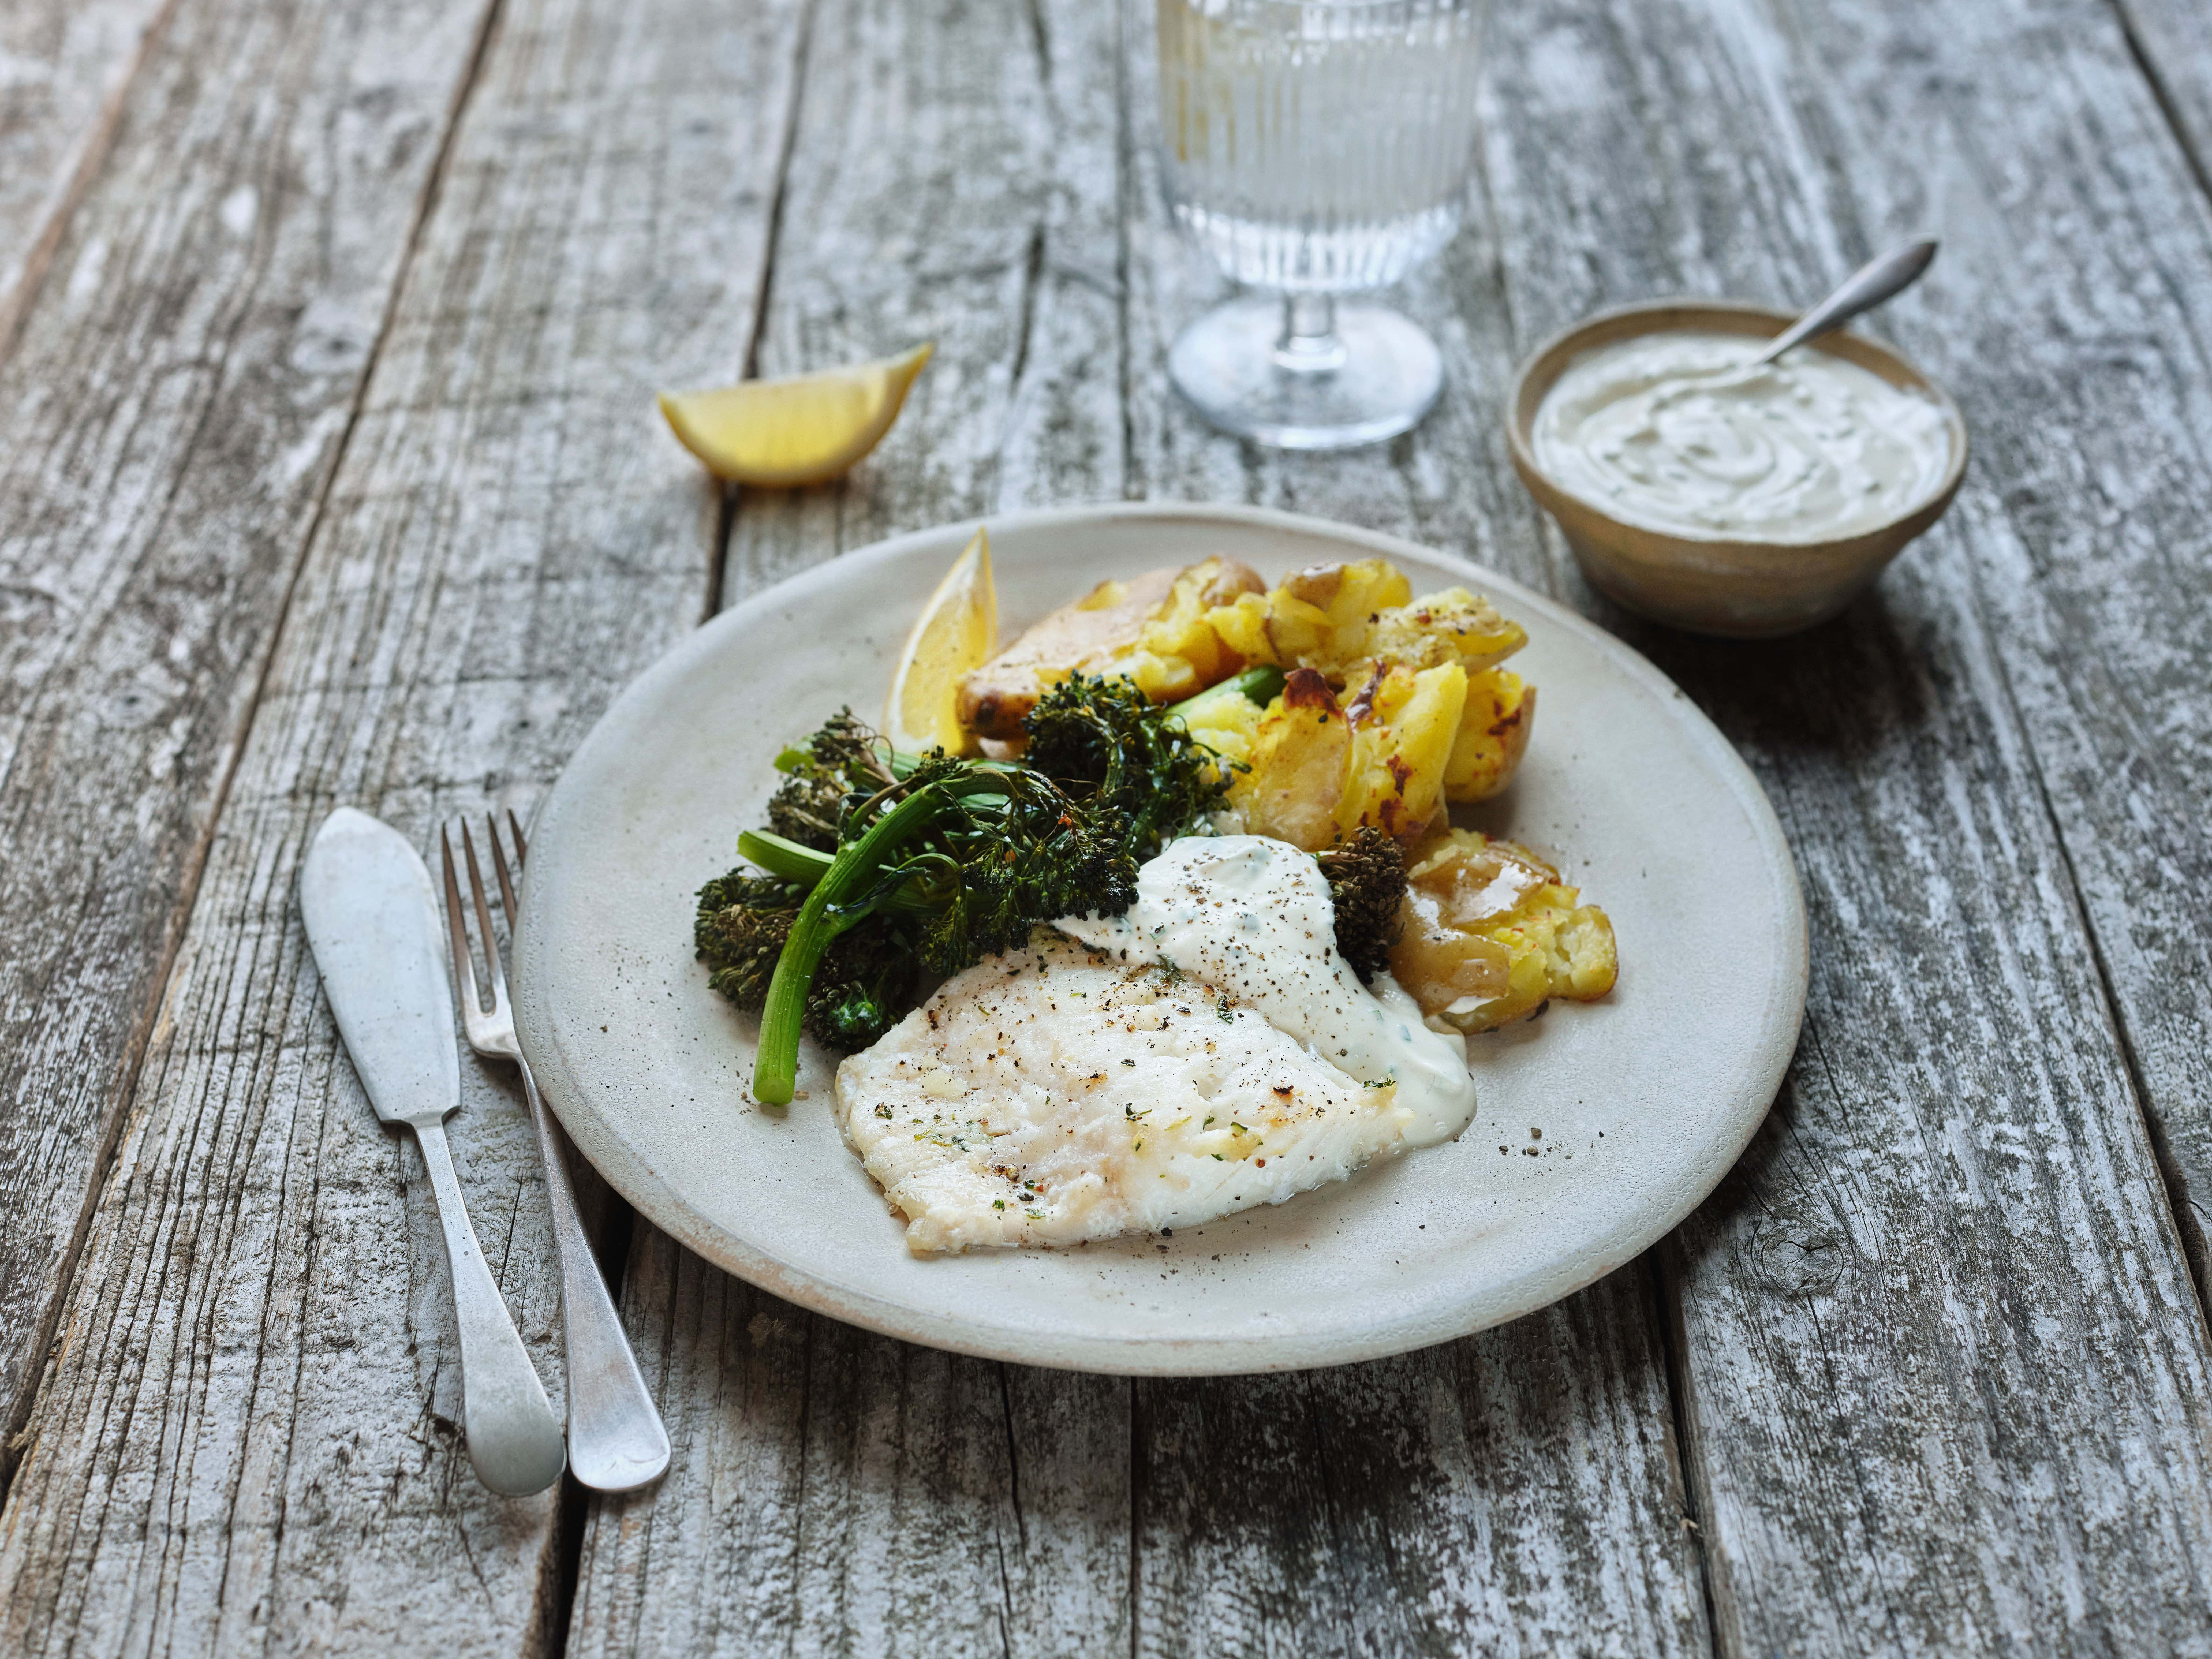 Baked Haddock with Crushed Potatoes and Creamy Dressing